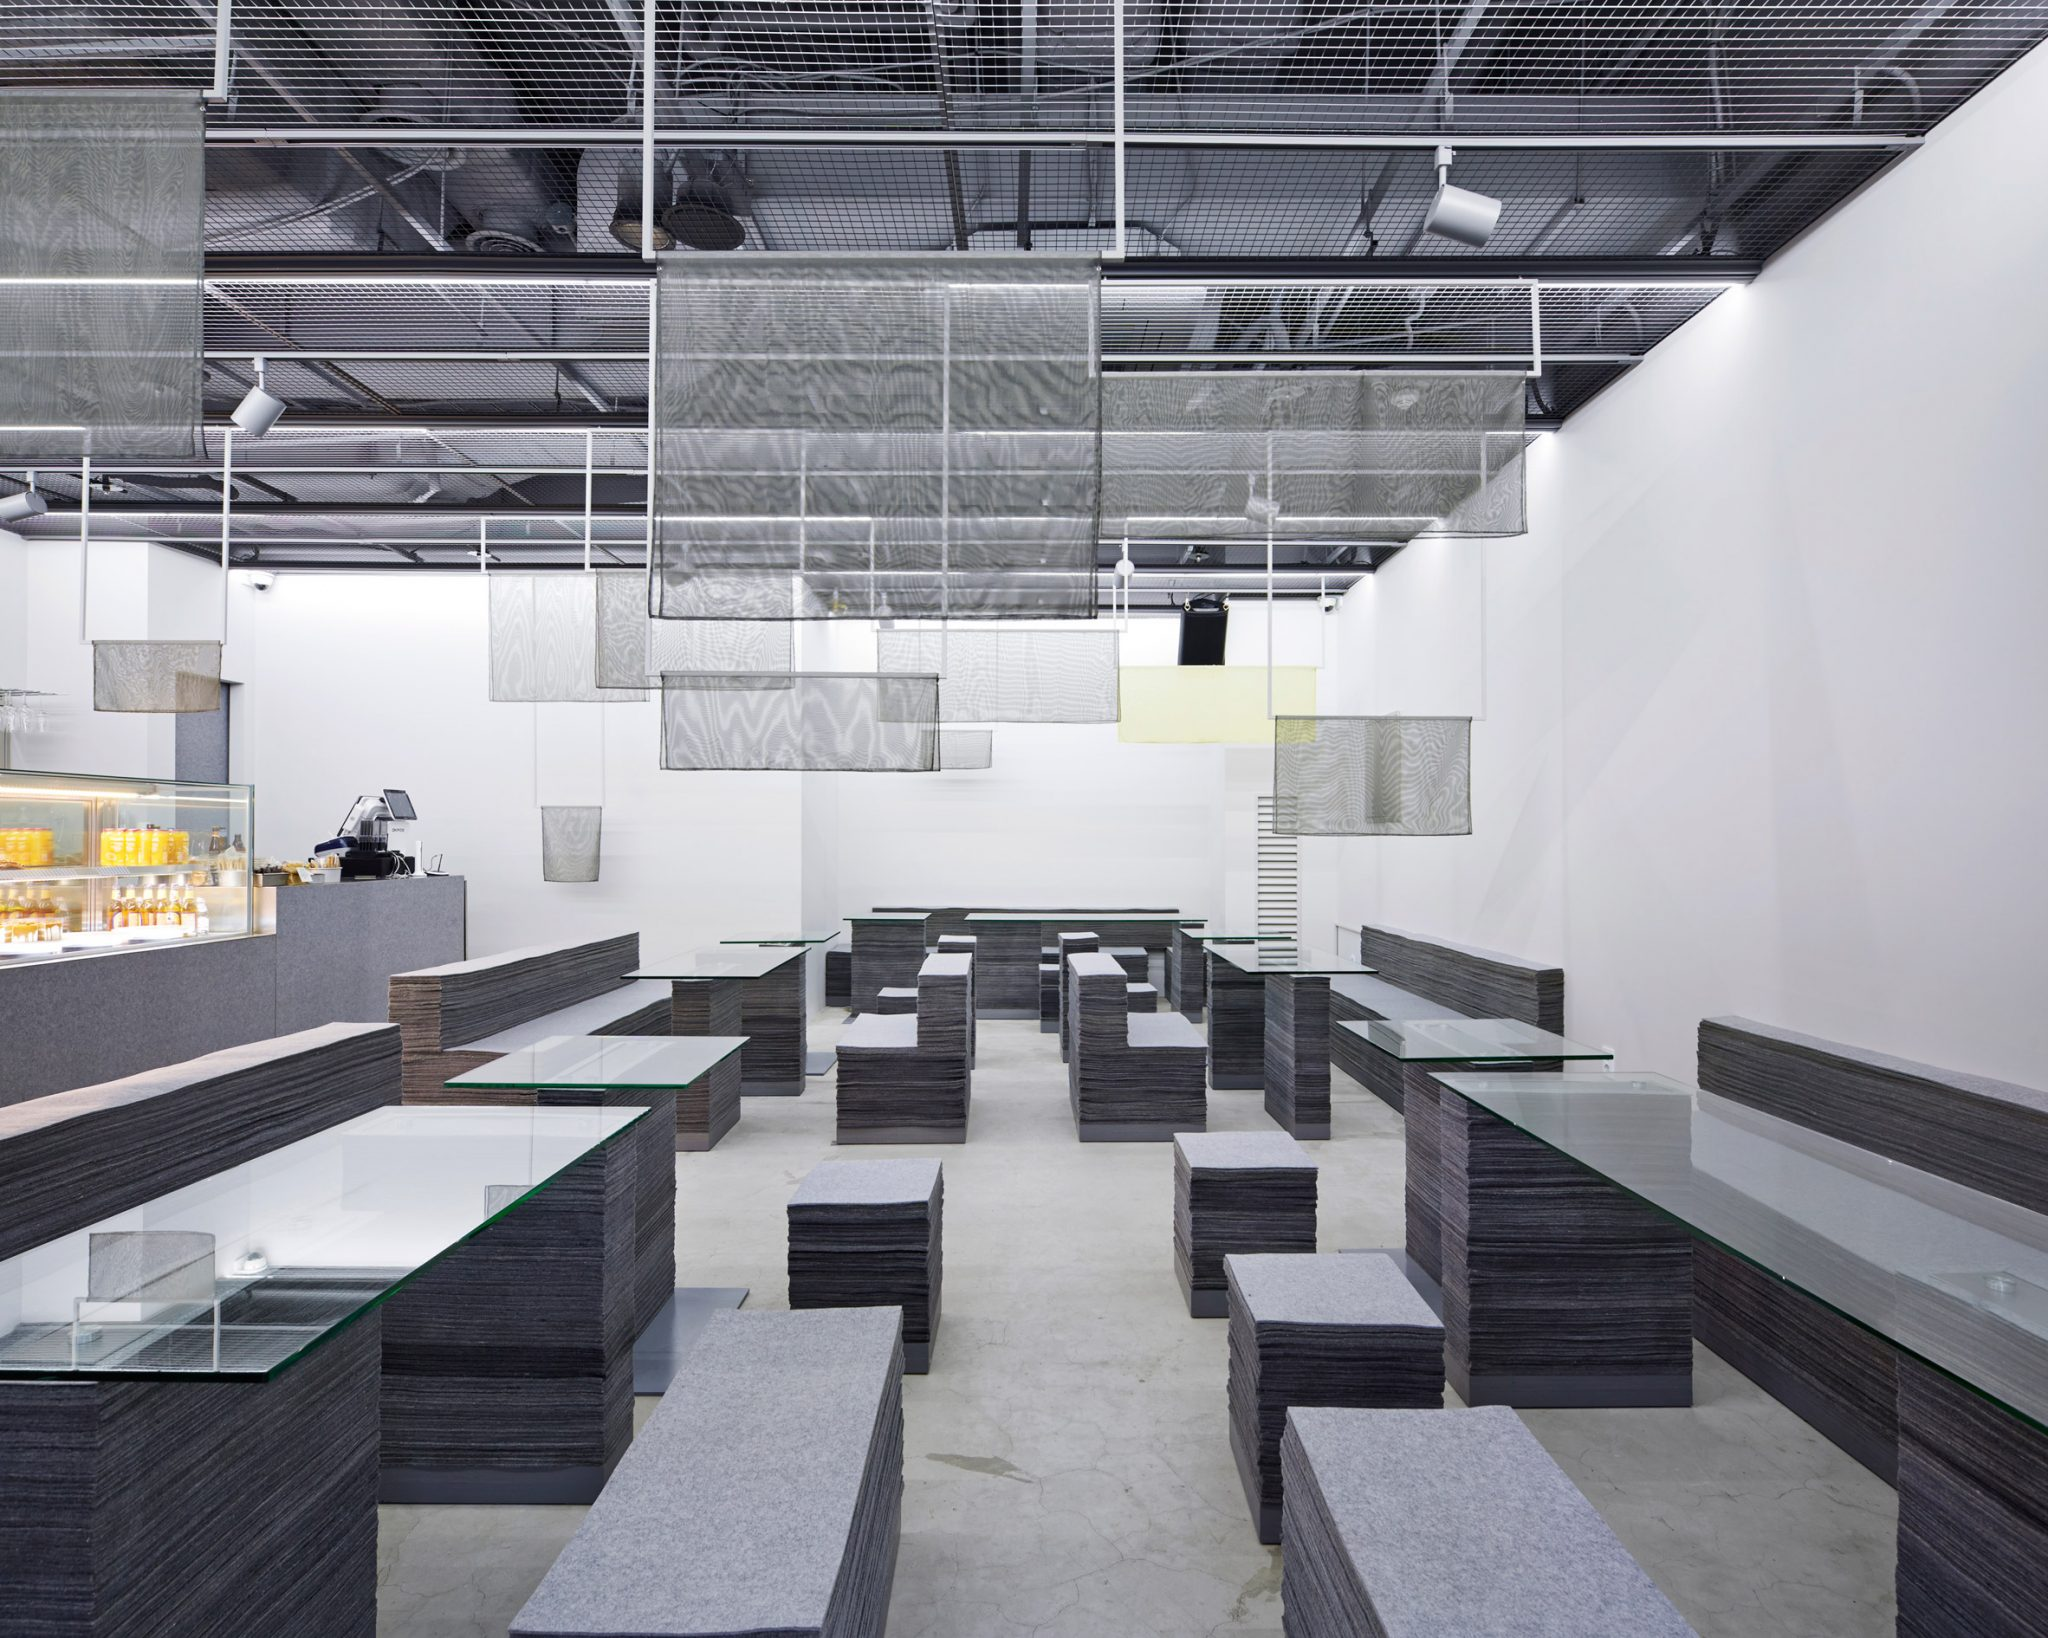 on-ne-sait-jamais-and-felt-series-nameless-architecture-interiors-south-korea_dezeen_2364_col_1